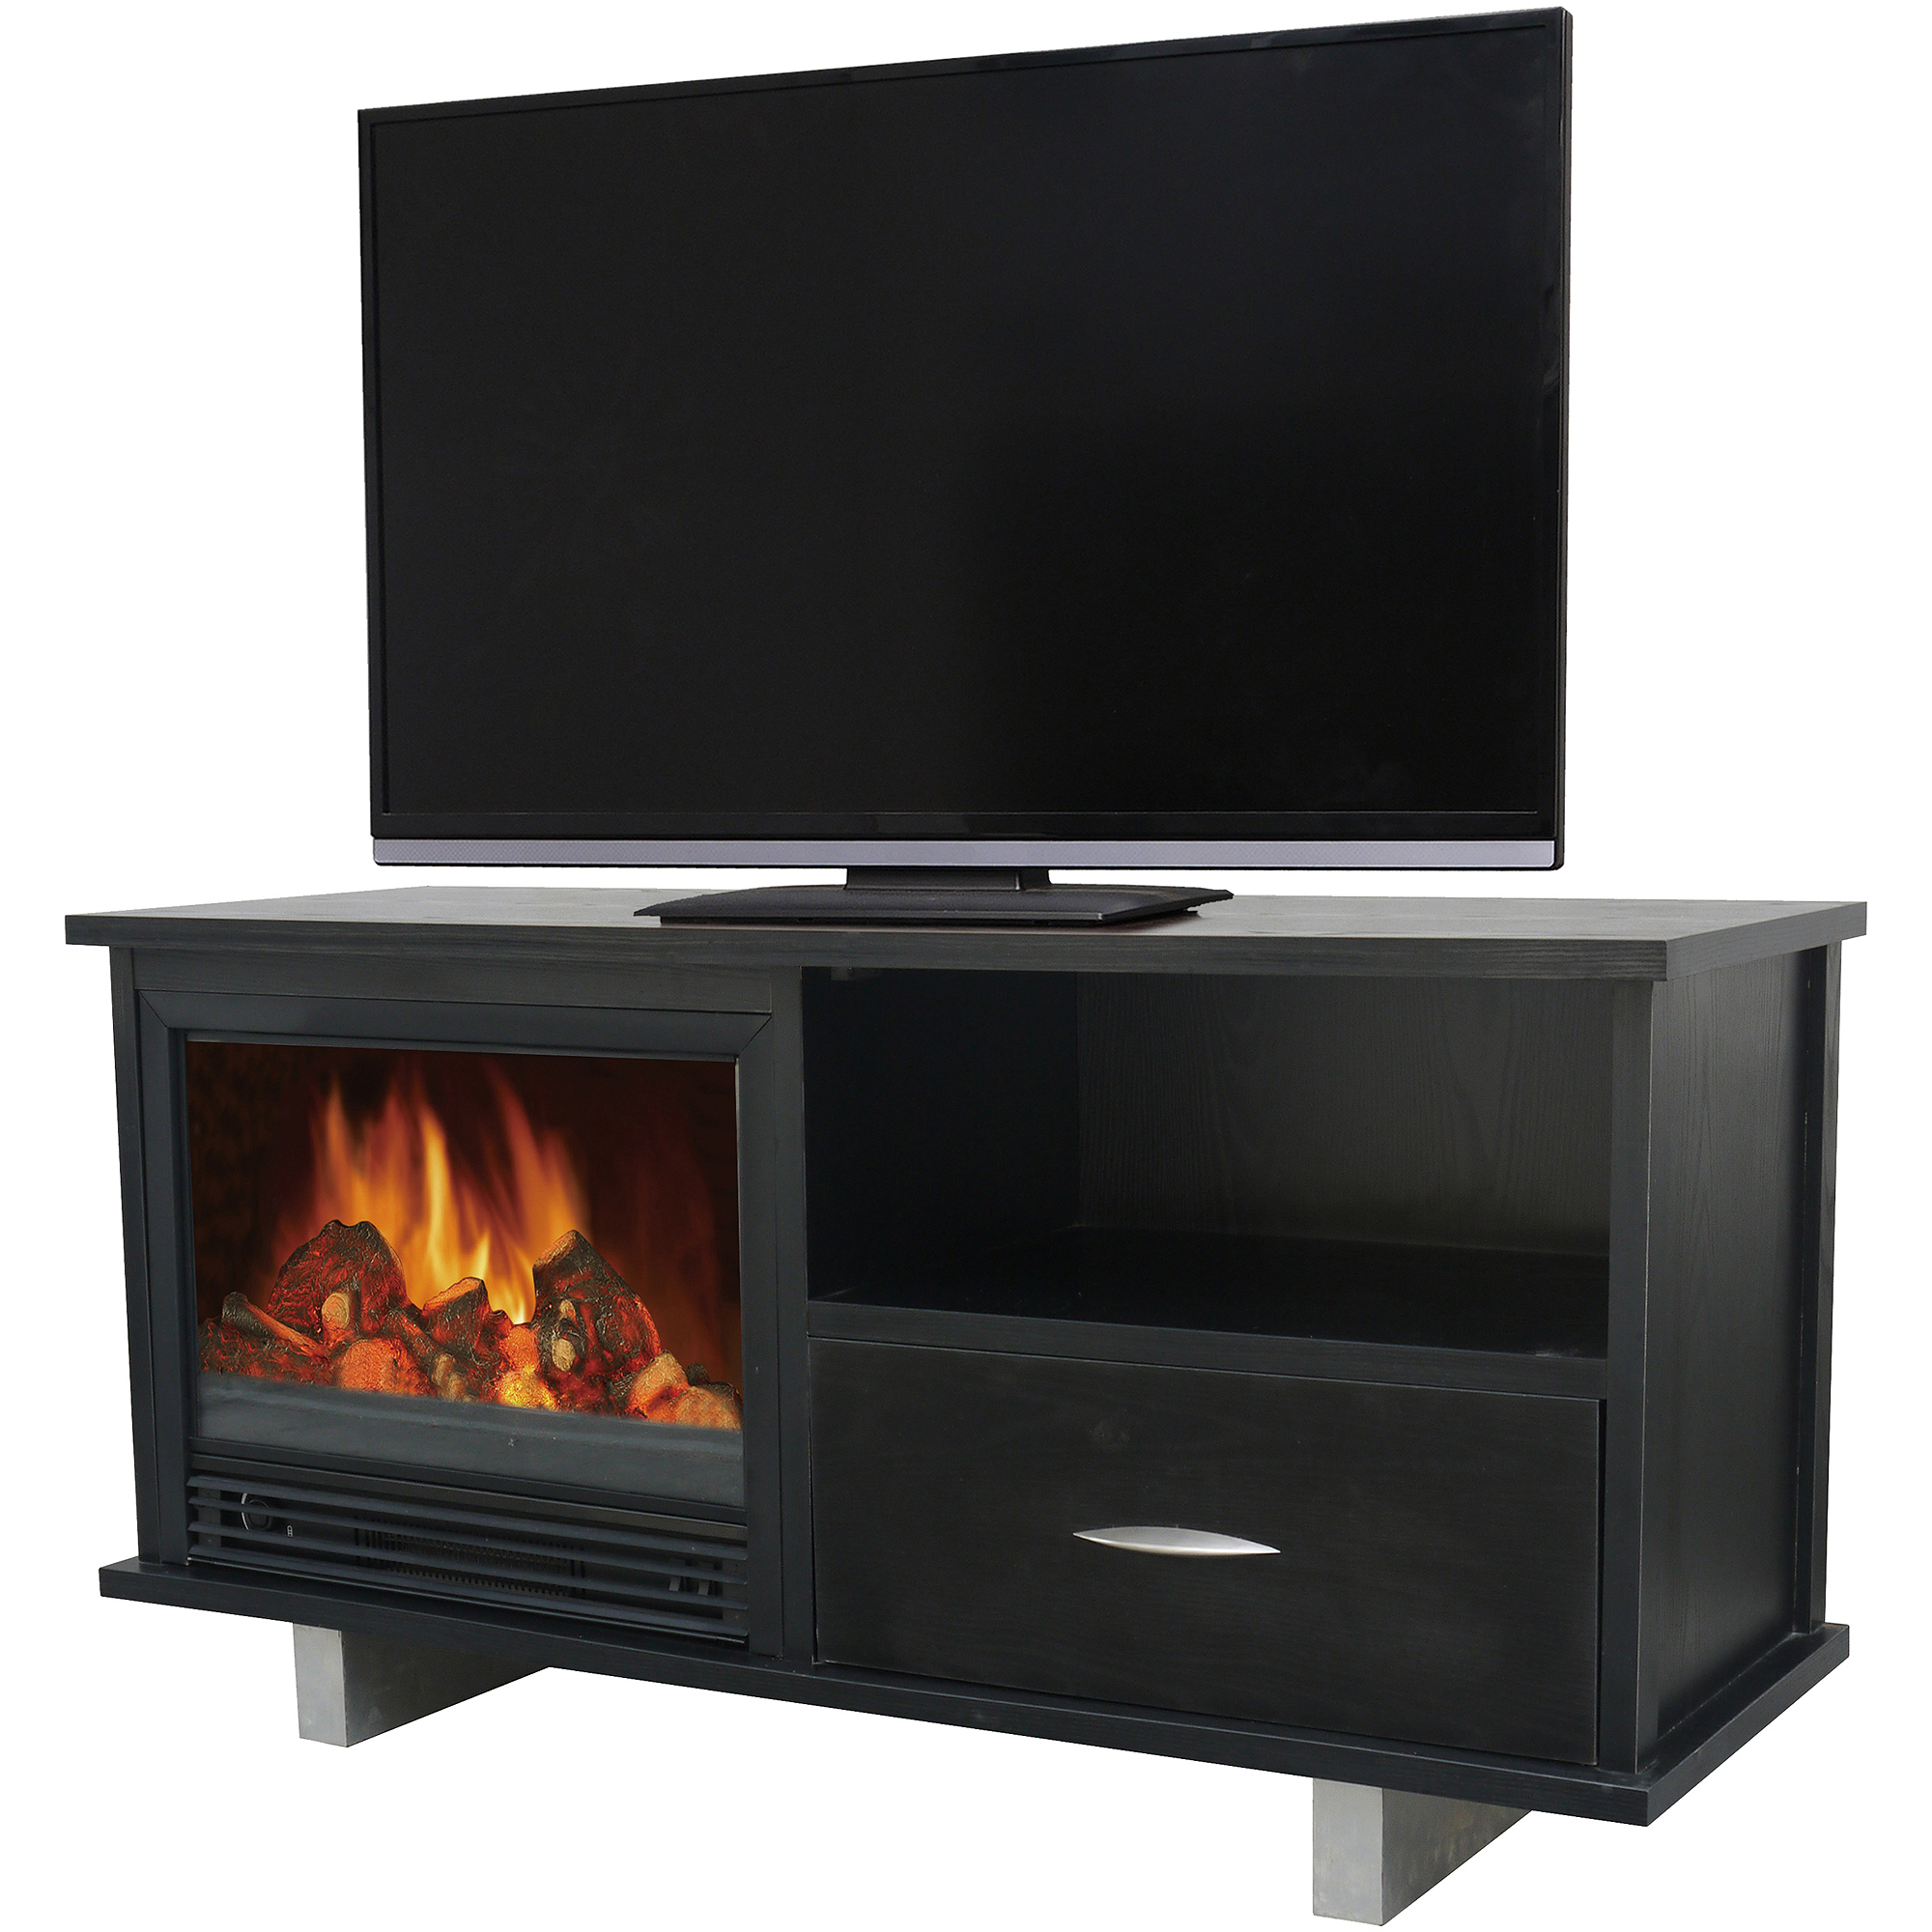 "Decor Flame Media Electric Fireplace for TVs up to 60"", Black"